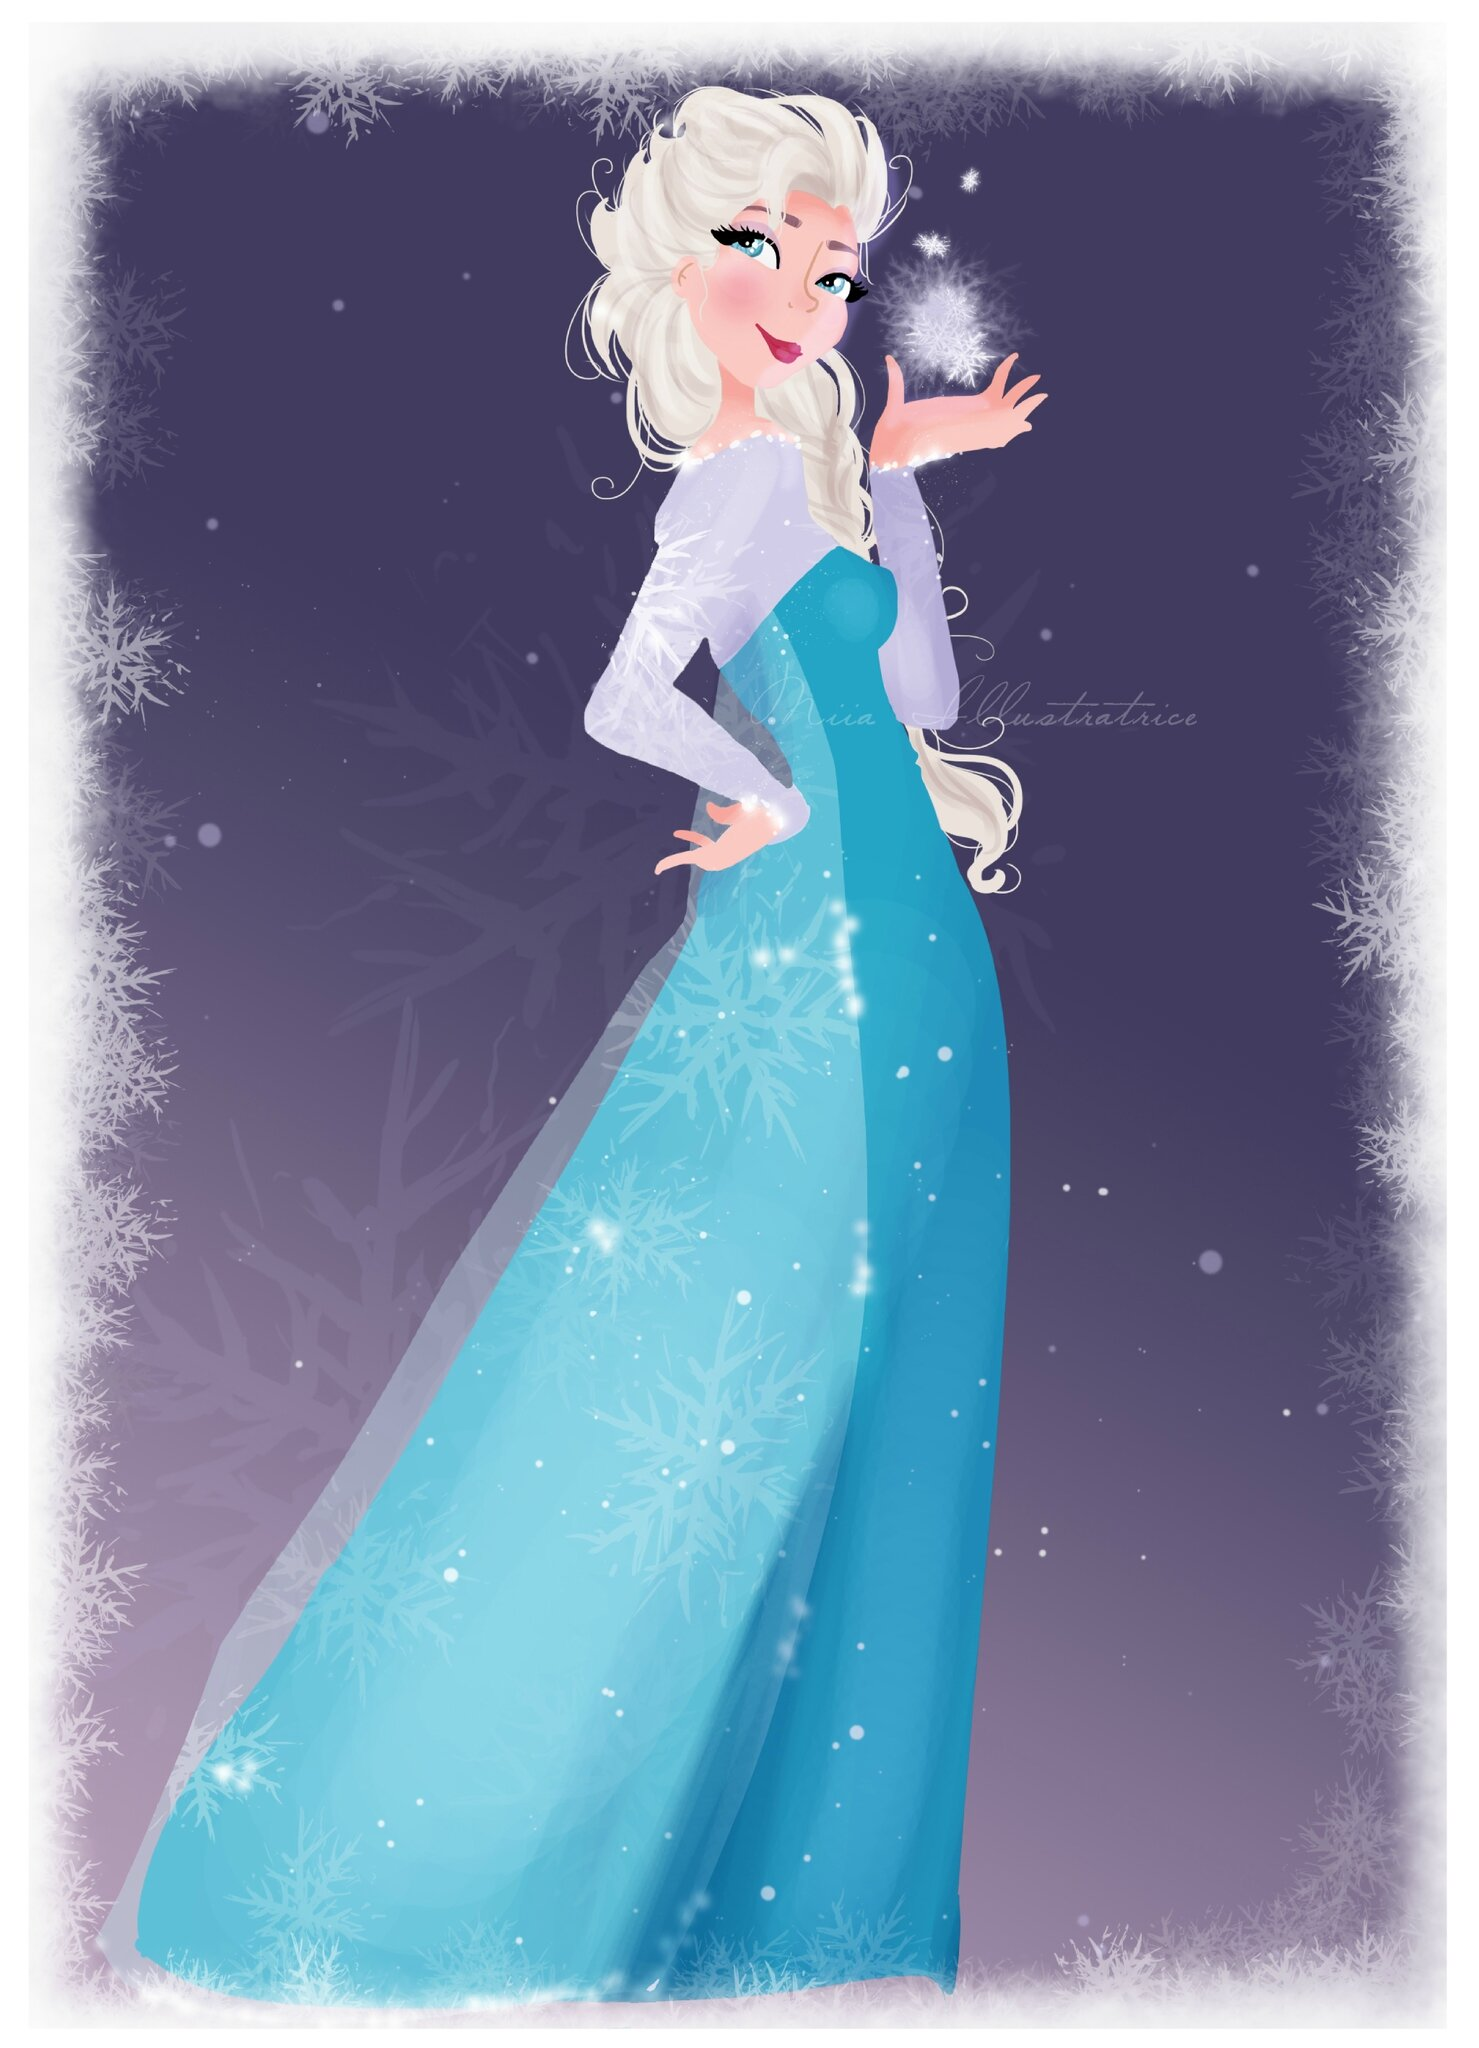 La reine des neiges elsa blog de miia illustratrice - Photo de la reine des neige ...